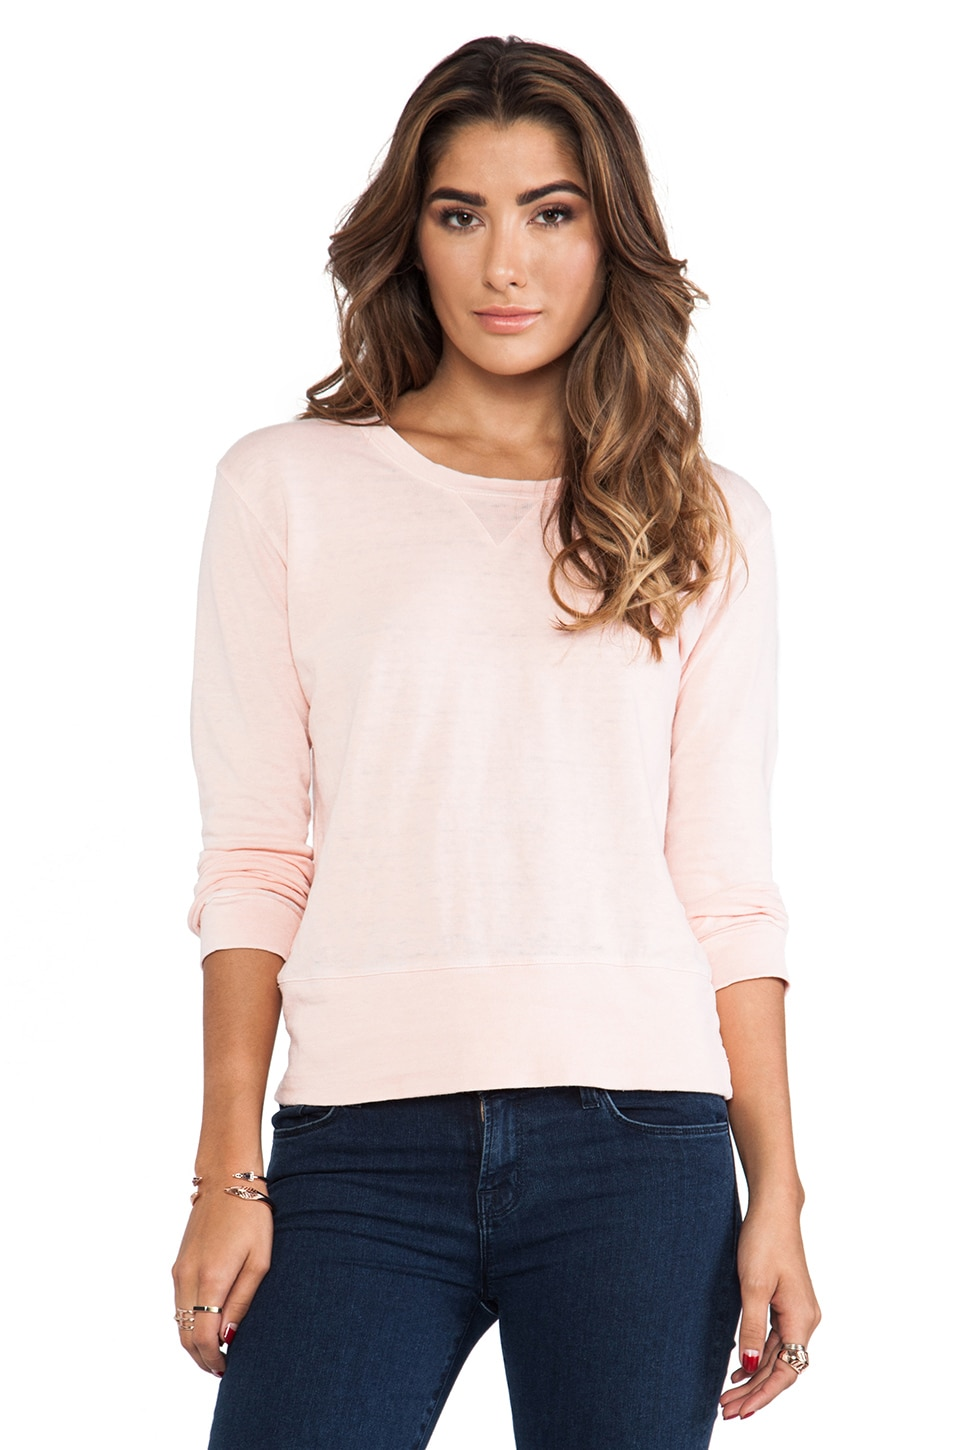 MONROW Vintage Basics Crew Sweatshirt in Rose